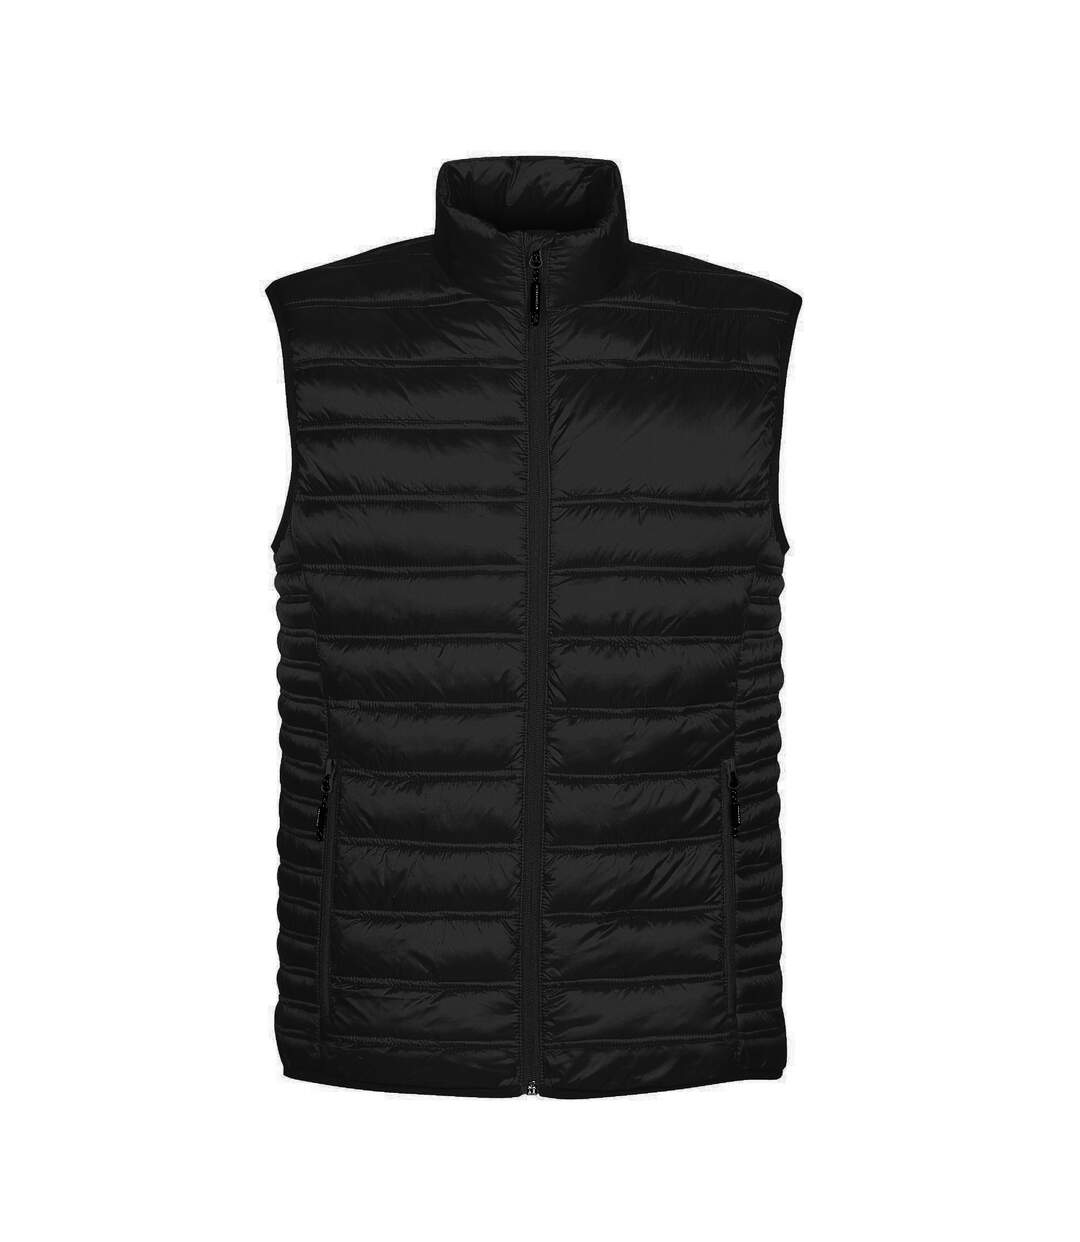 Stormtech Mens Basecamp Thermal Quilted Gilet (Black) - UTRW5479